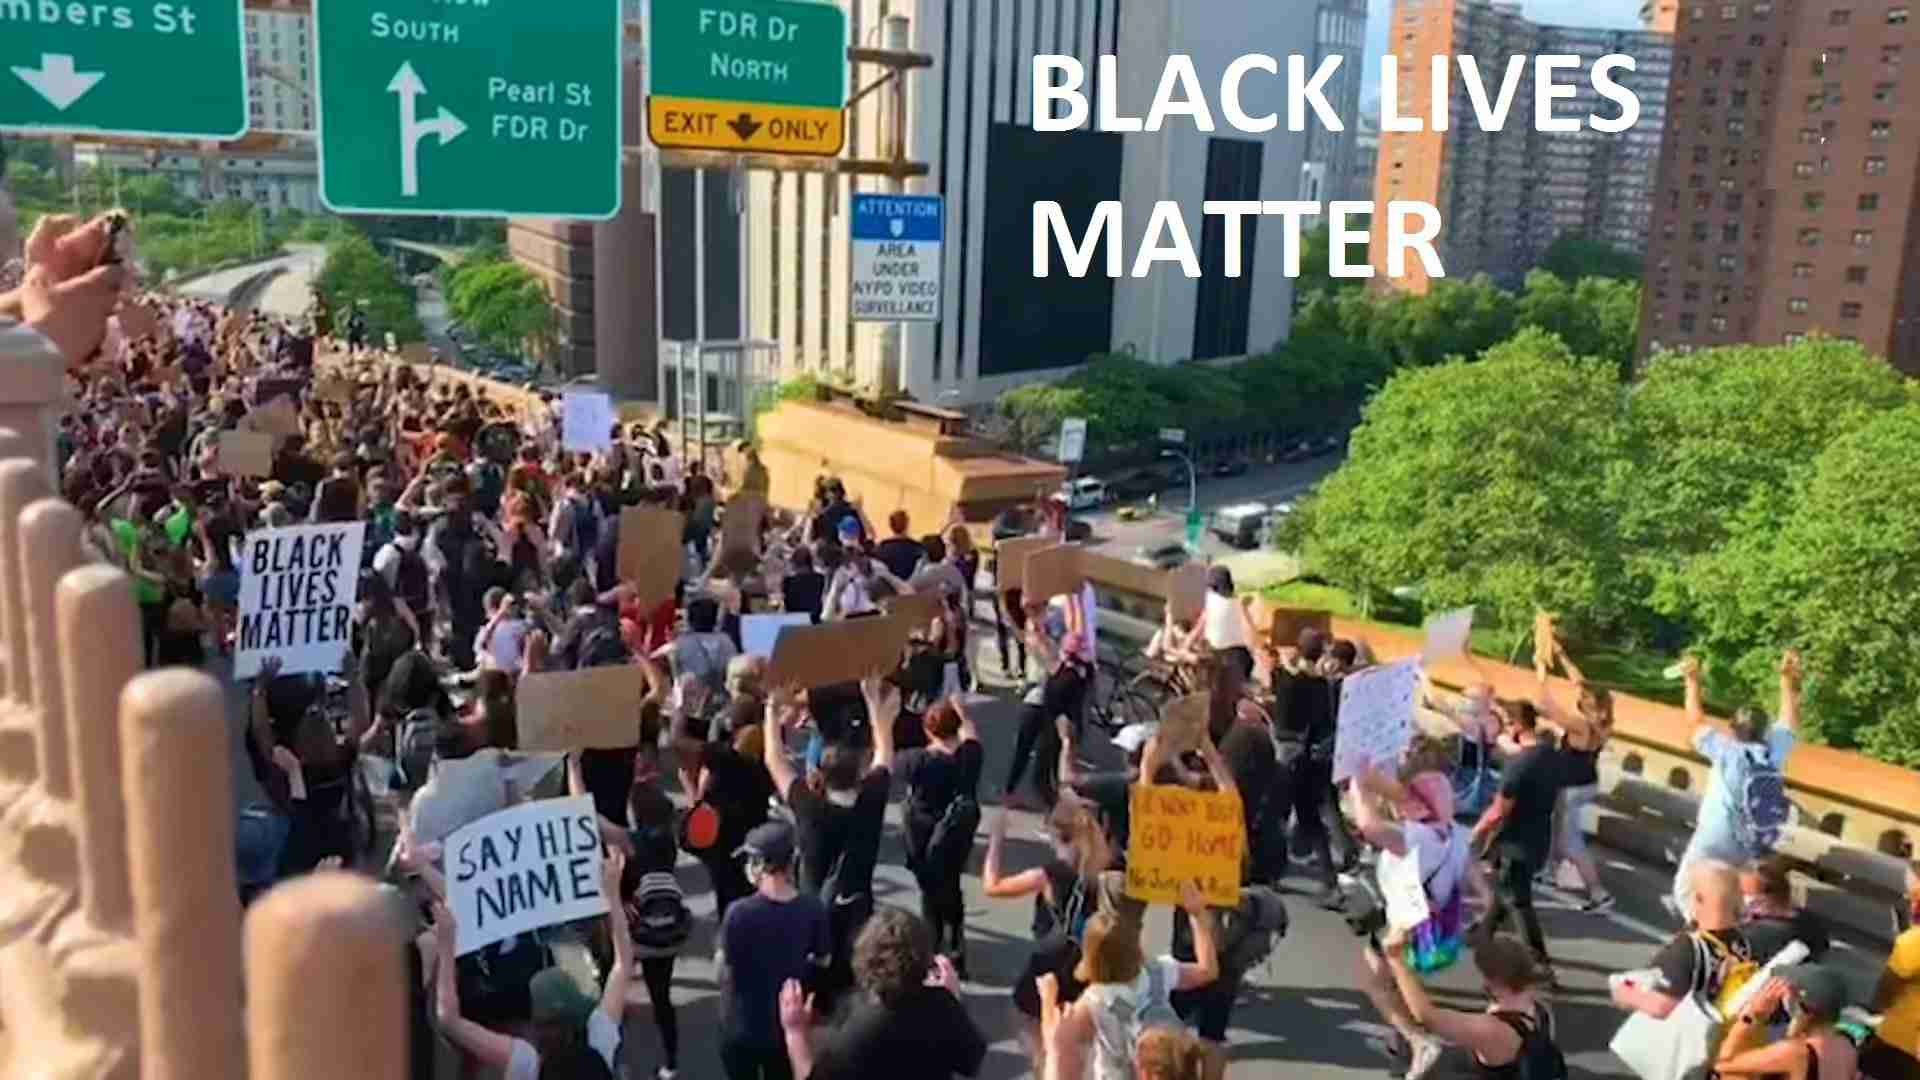 The Blacklives Matter